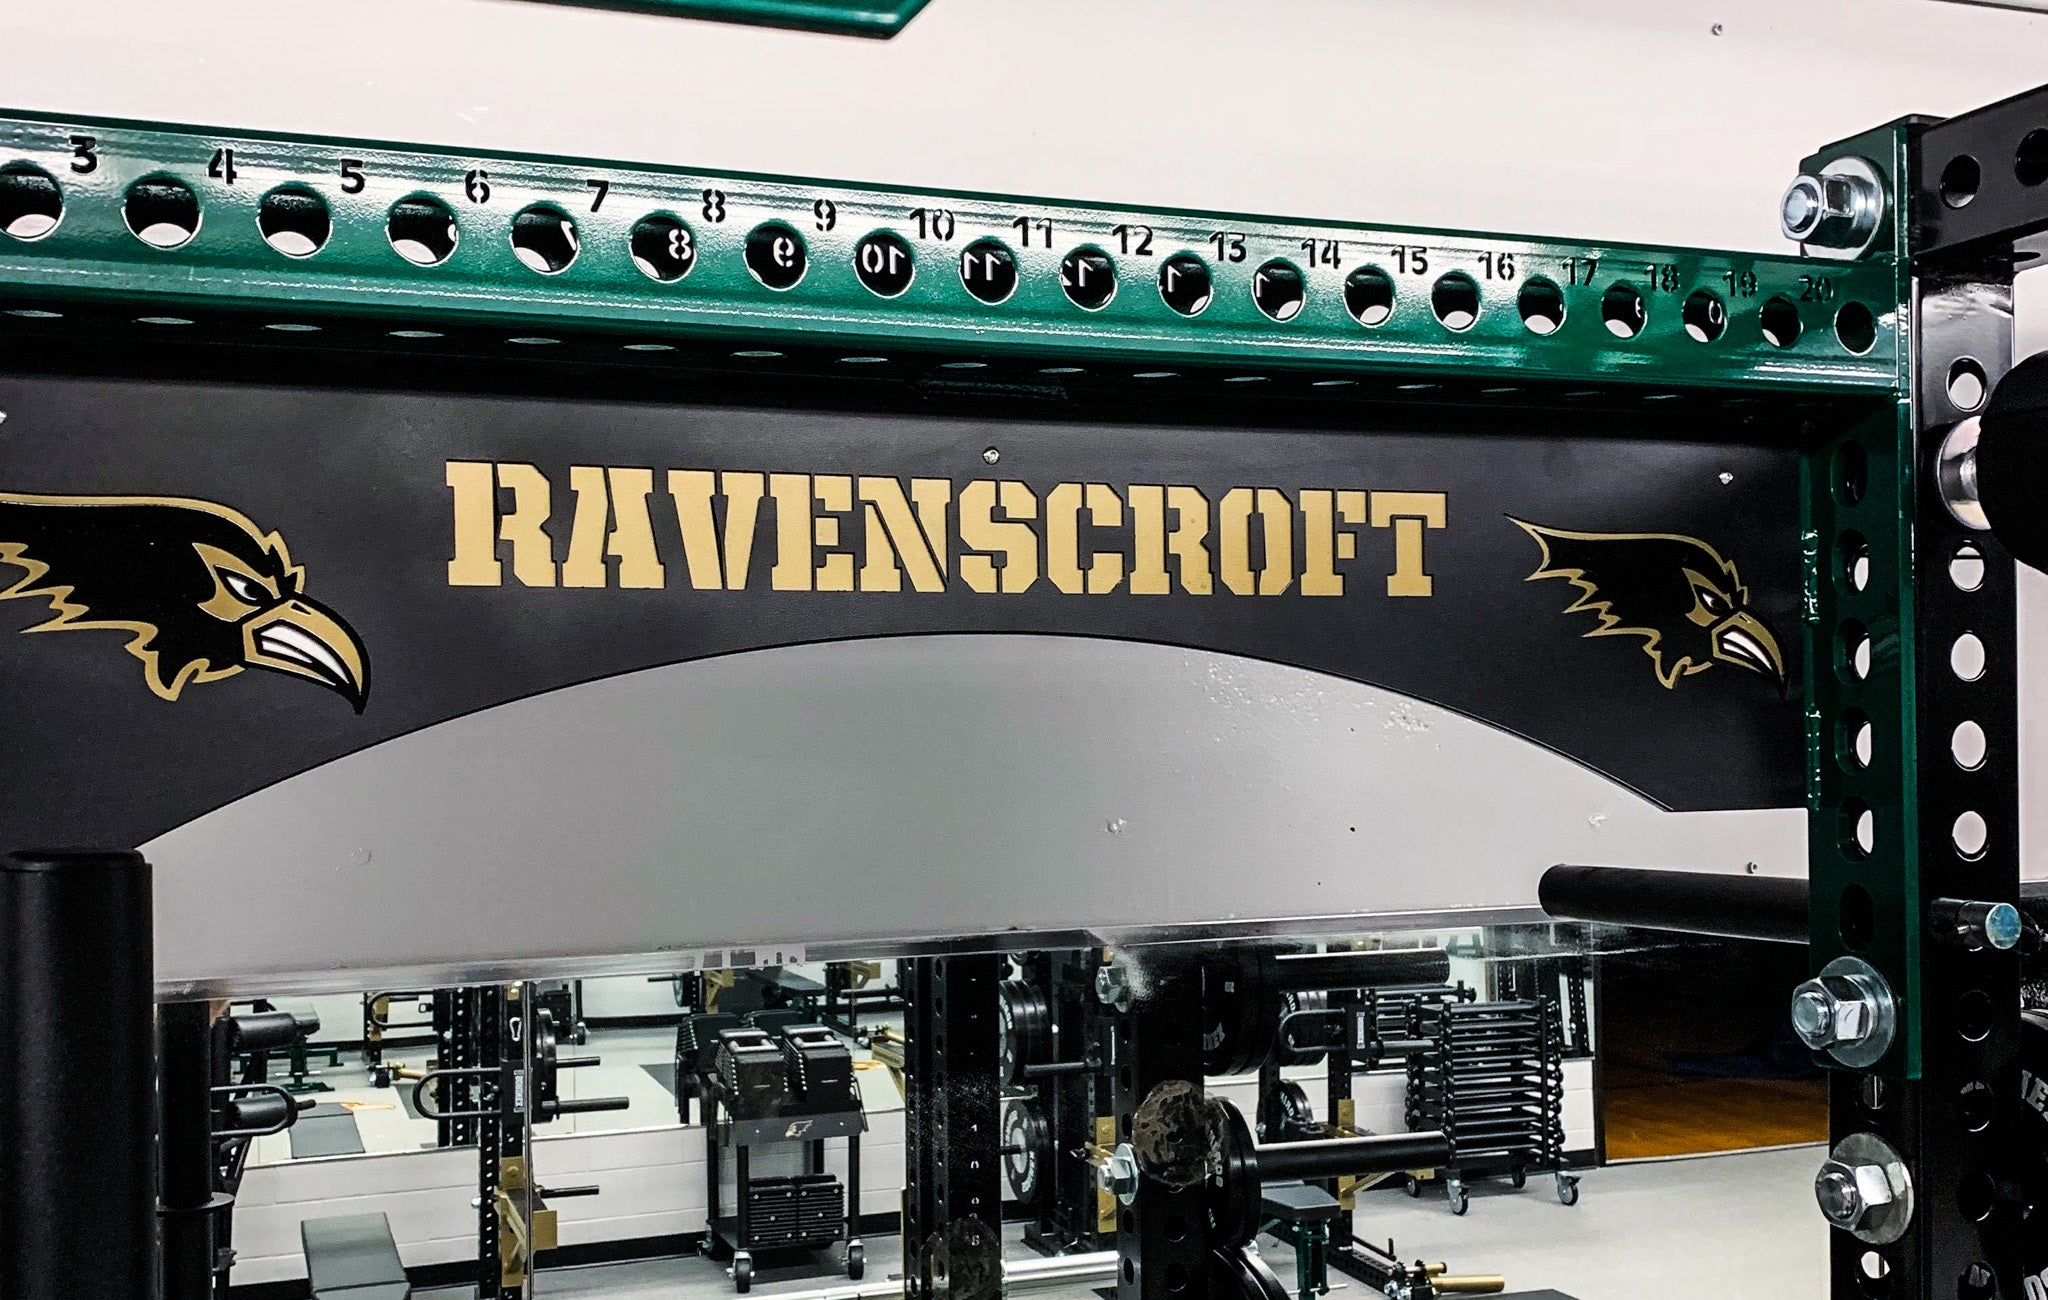 Ravenscroft strength training